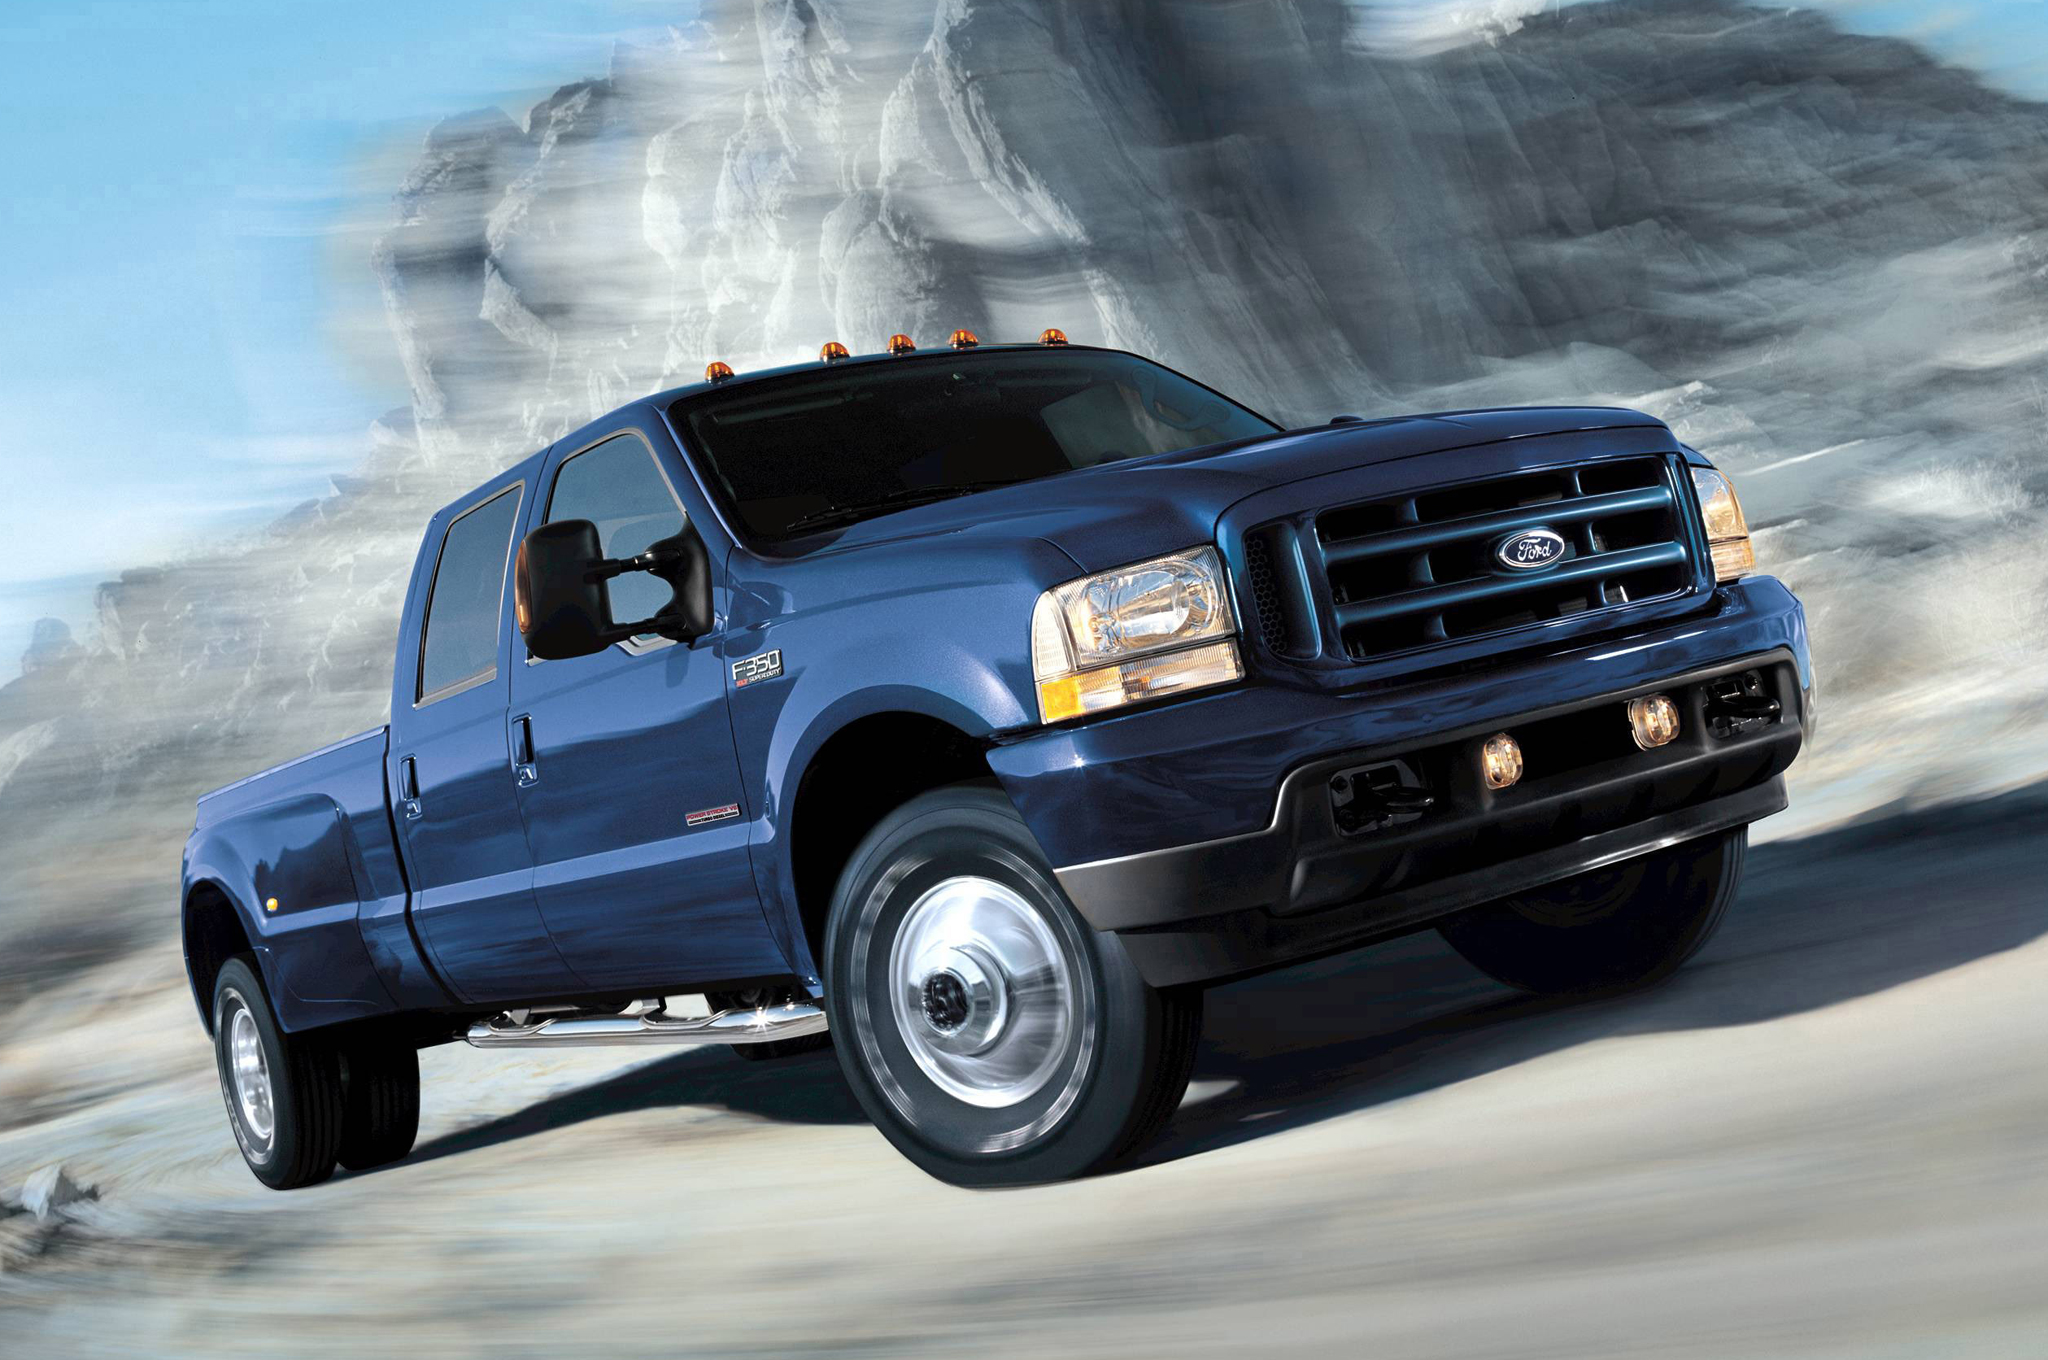 Ford Super Duty >> 2003 FORD F-250 SUPER DUTY - Image #9